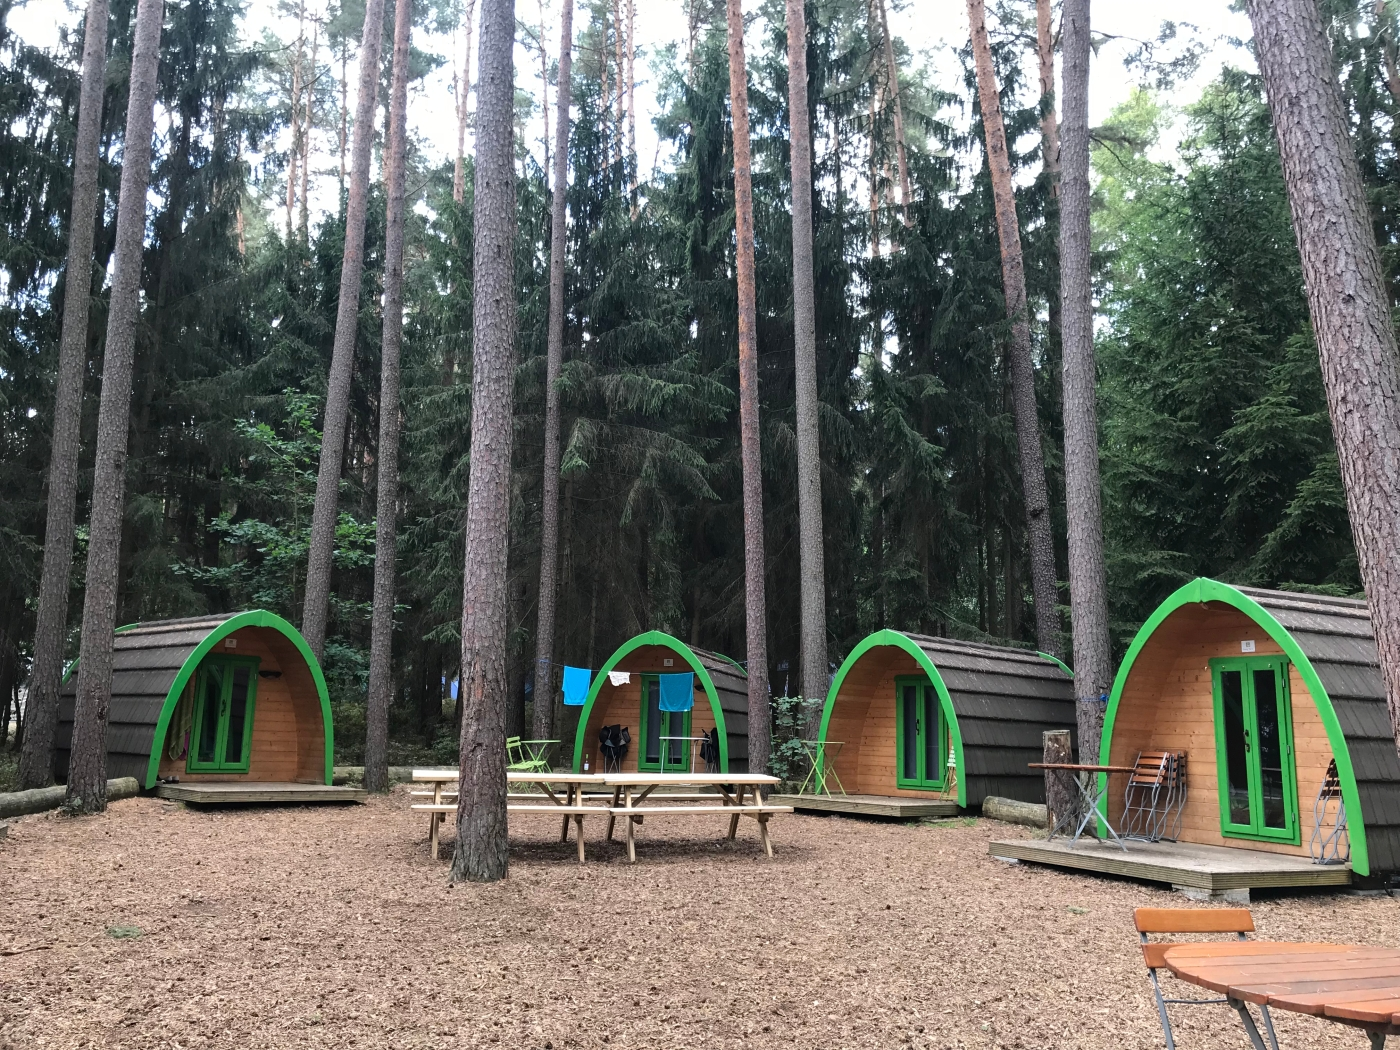 Camping Pods at Waldcamping in Brombachsee